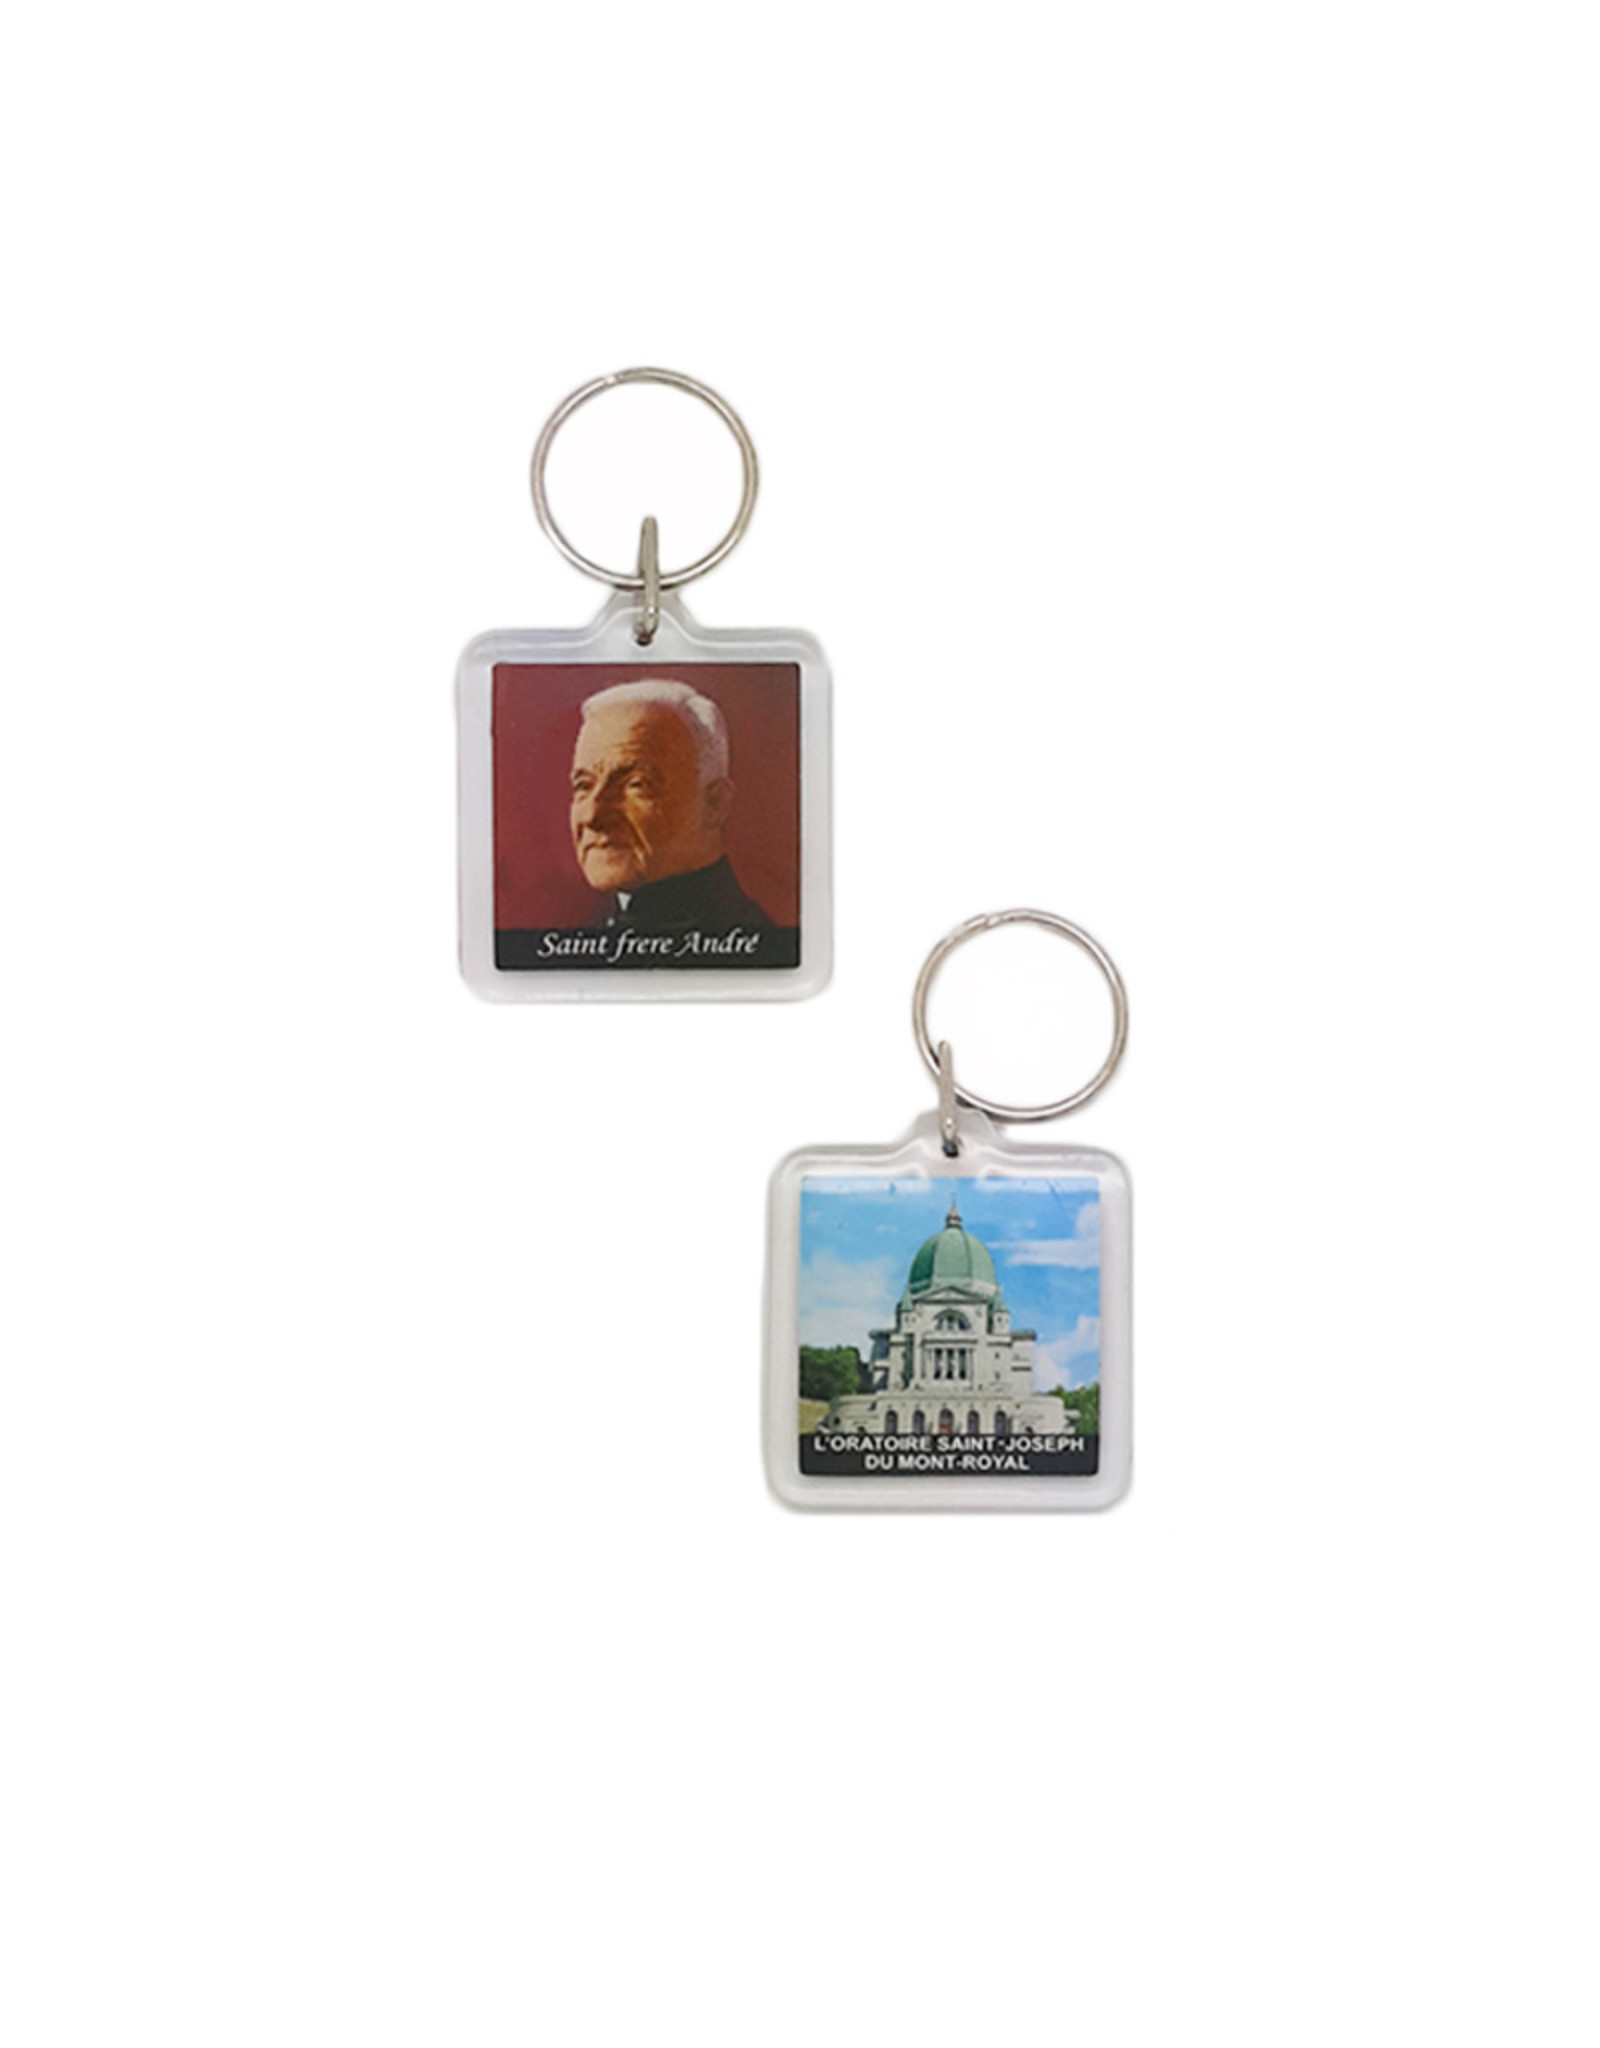 Saint Brother Andre and Oratory keychain